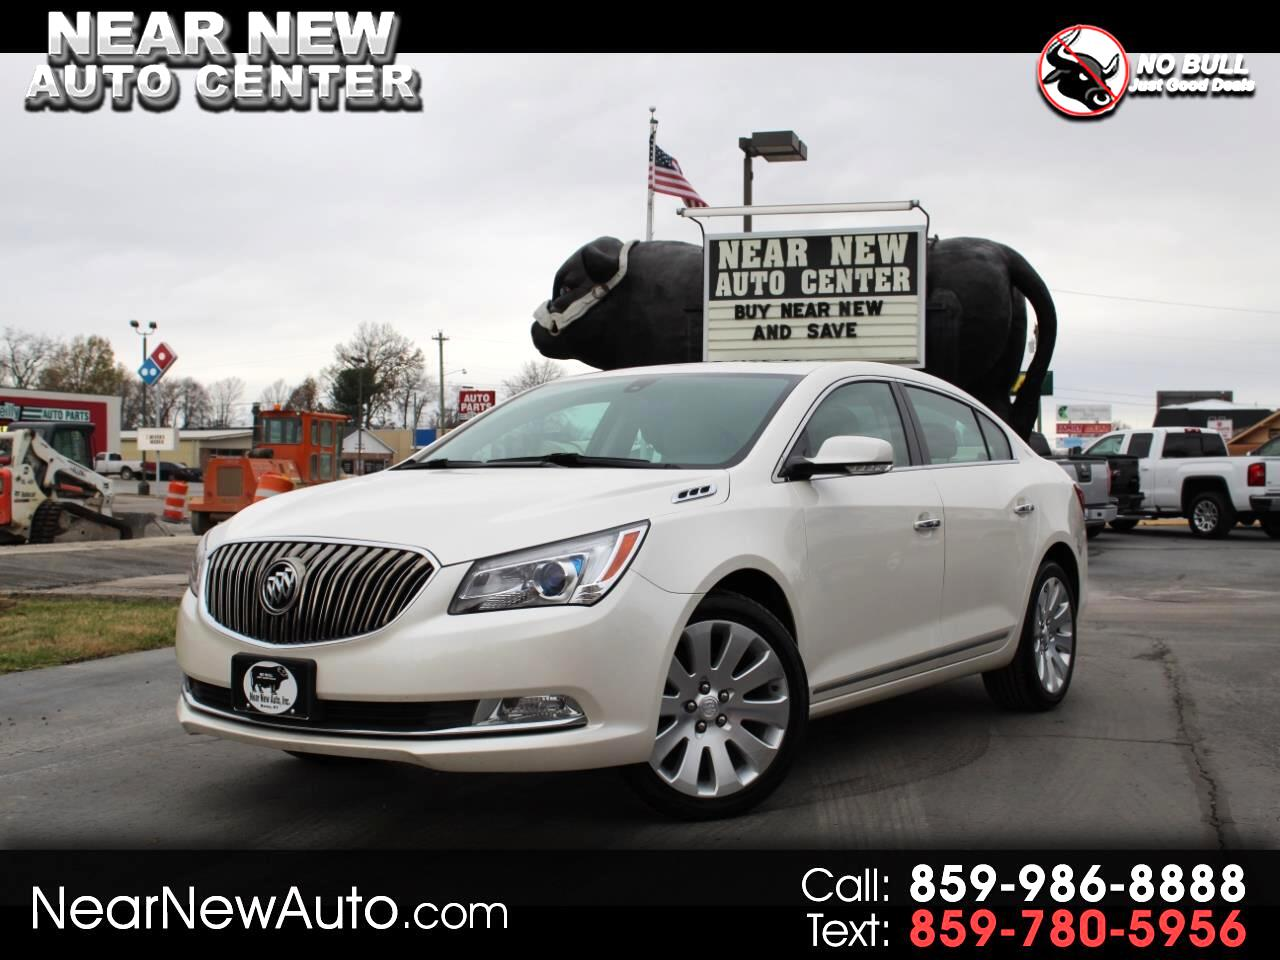 2014 Buick LaCrosse 4dr Sdn Leather AWD